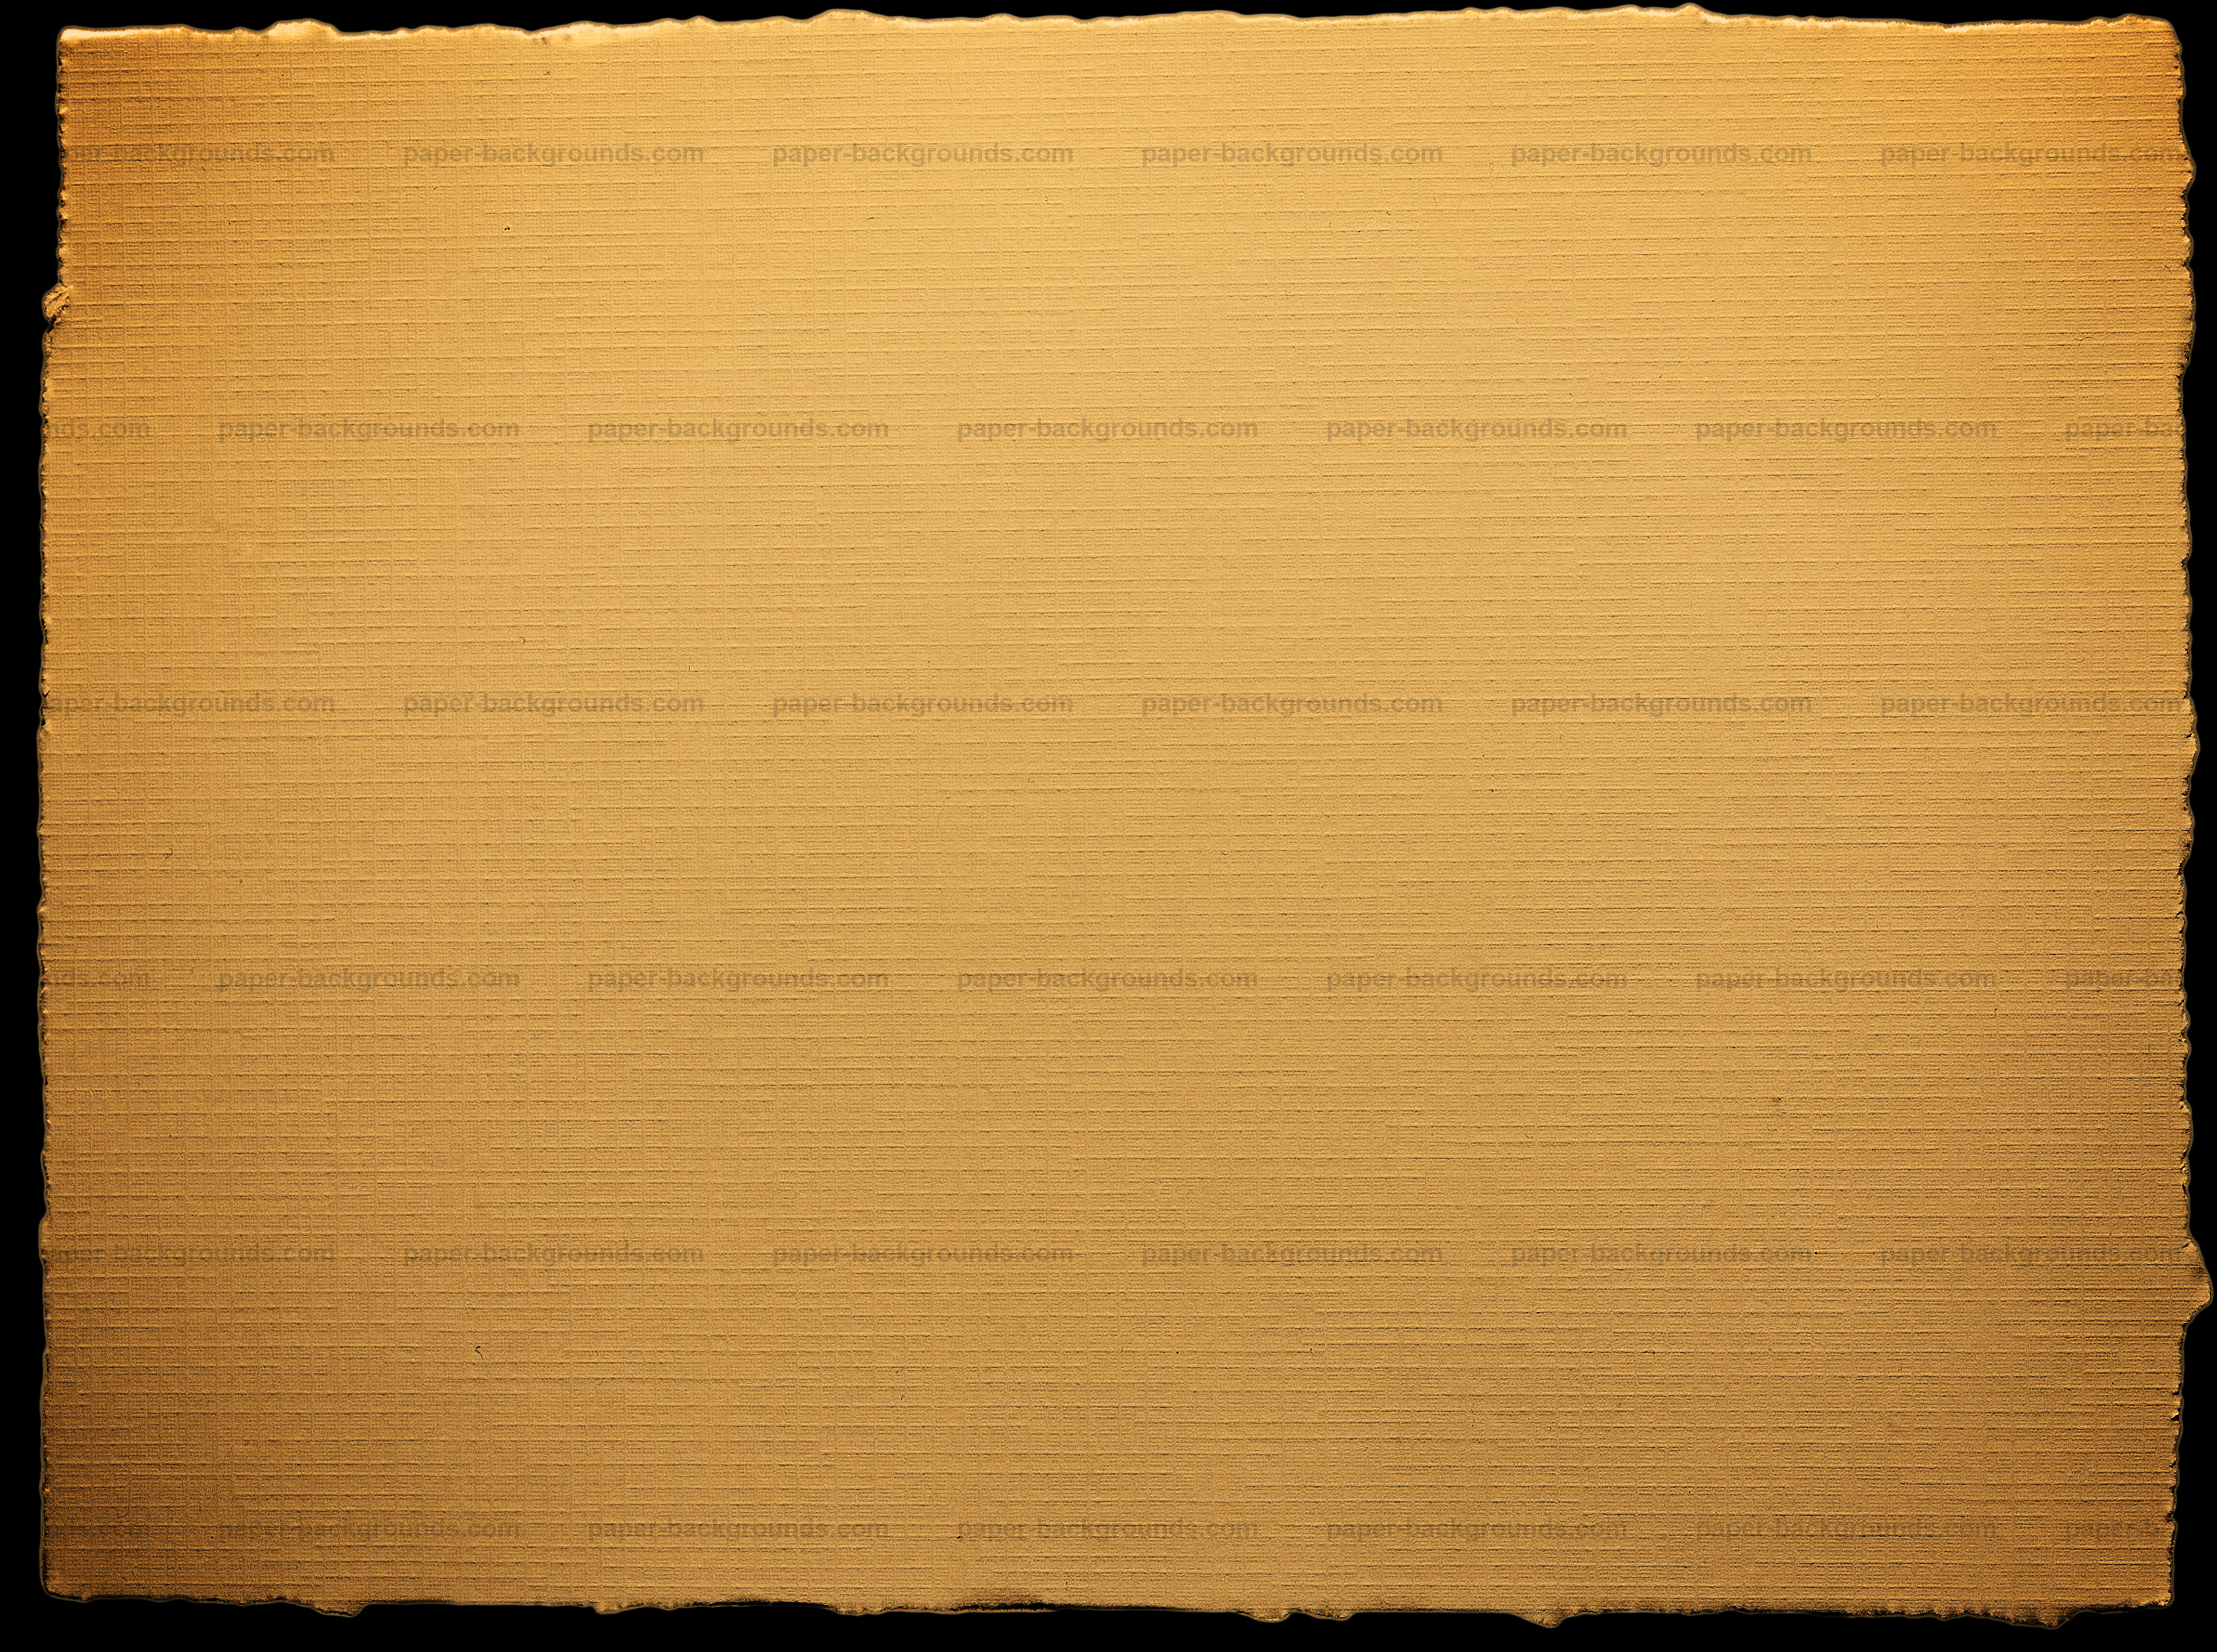 yellow orange torn paper background Paper Backgrounds 3386x2523